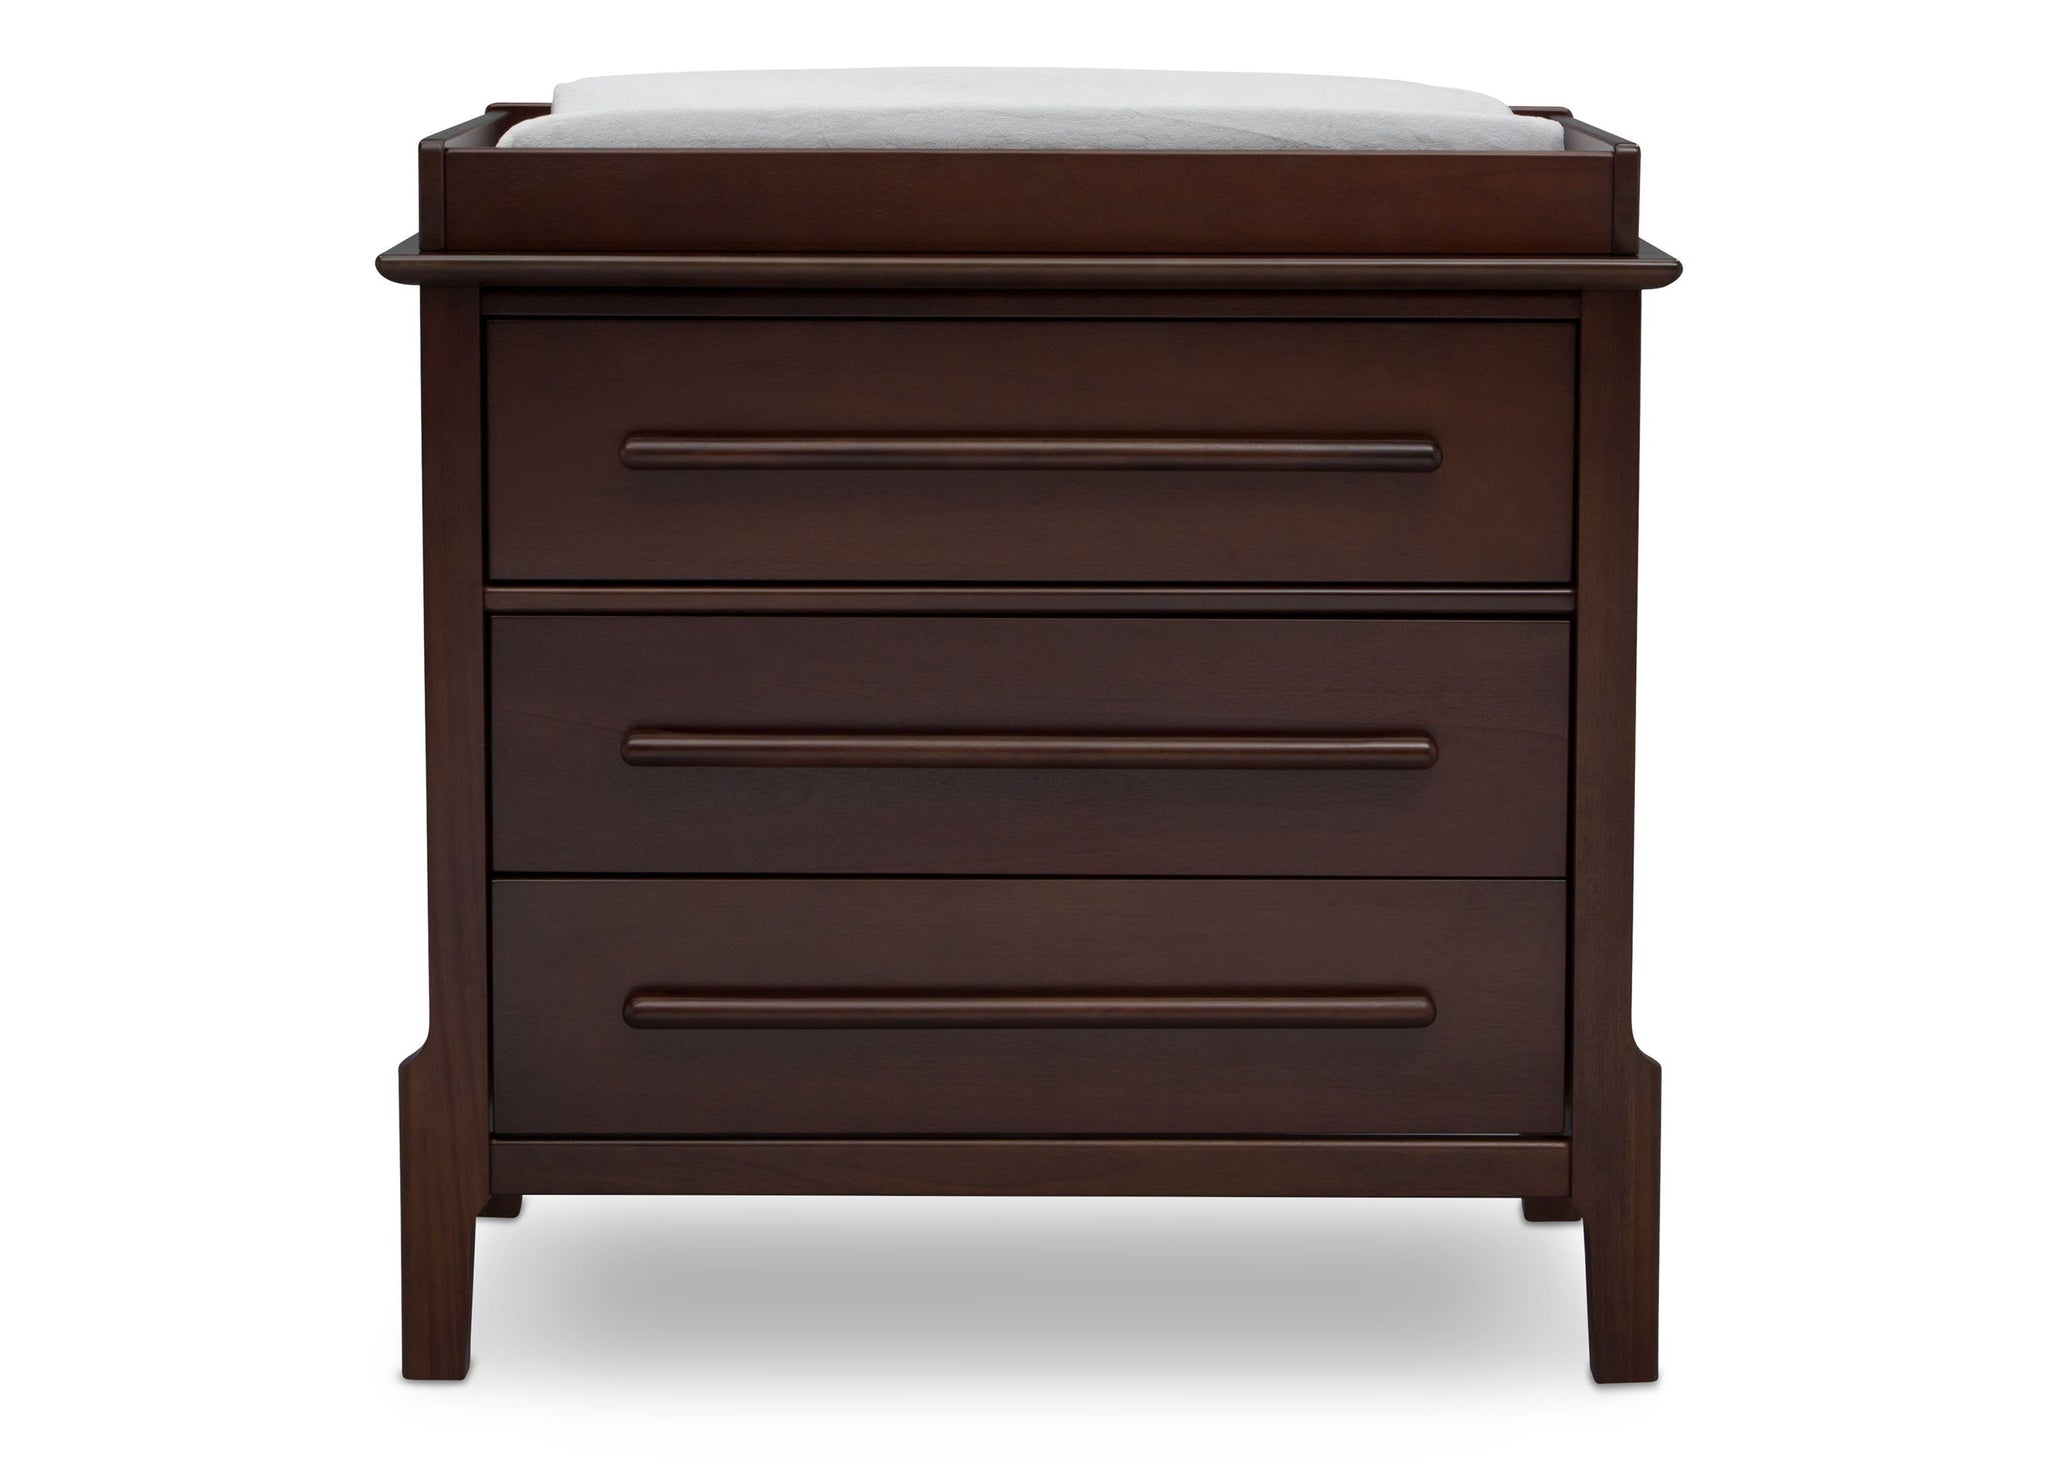 Serta Walnut Espresso (1324) Mid-Century Modern 3 Drawer Dresser with Changing Top, Front c1c